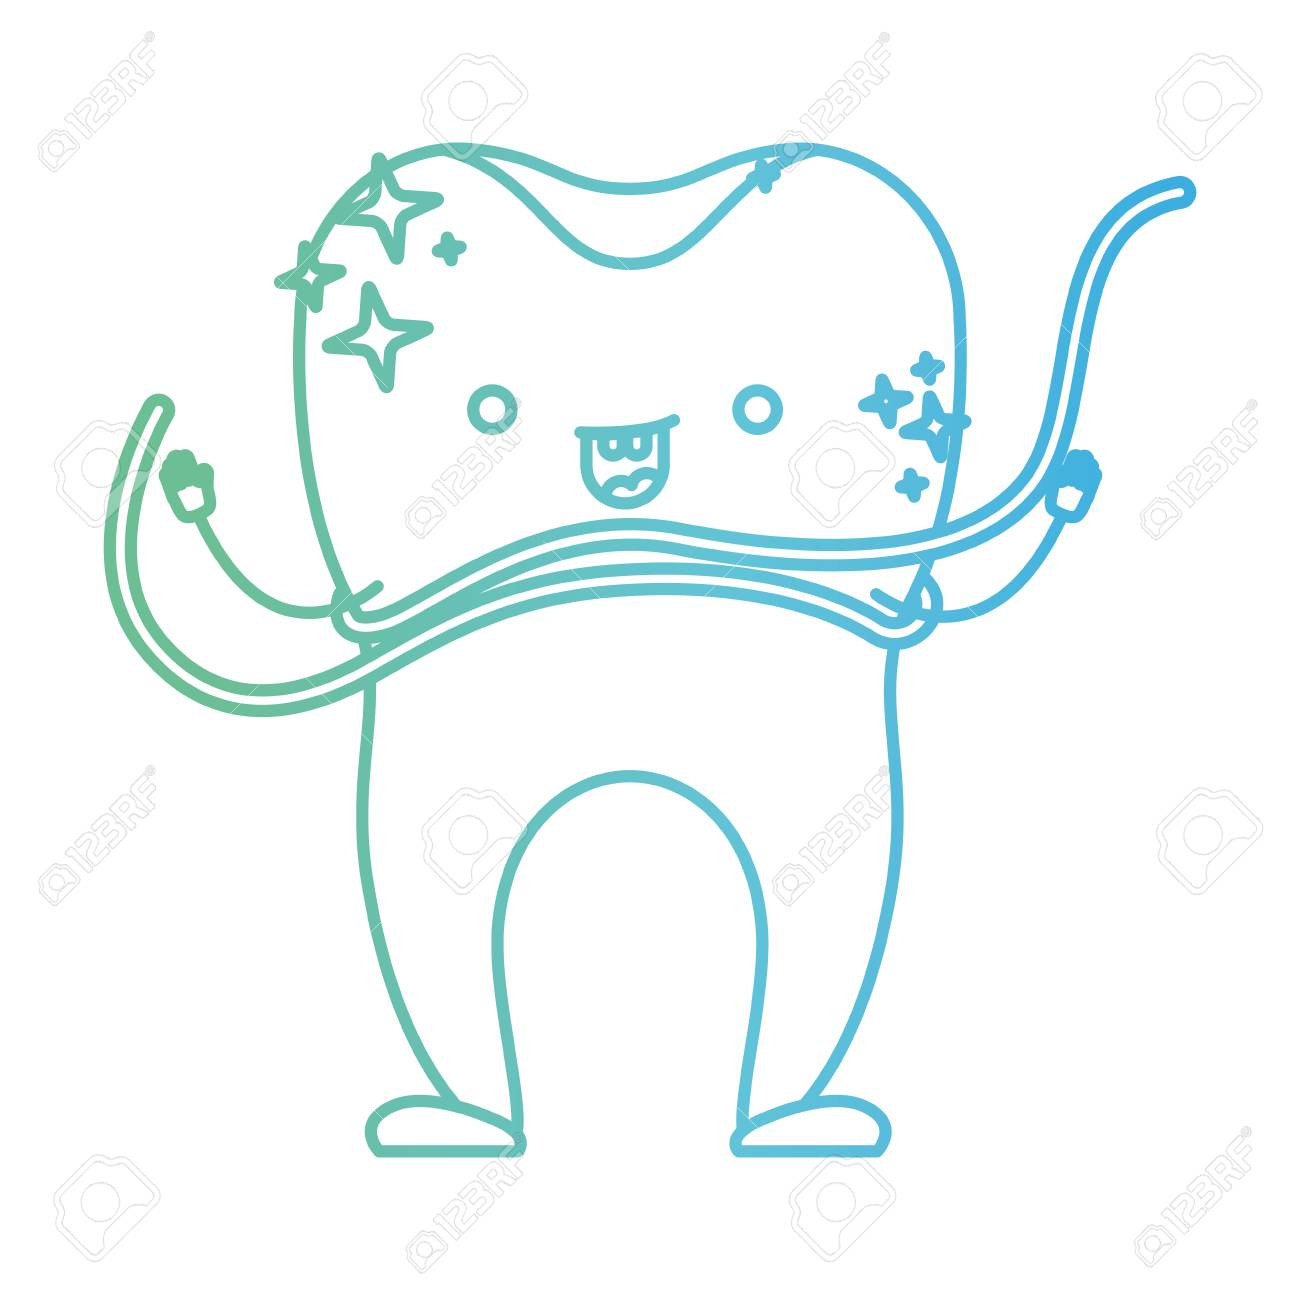 Cartoon Tooth With Dental Floss Around In Degraded Green To Blue Color Contour Vector Illustration Stock